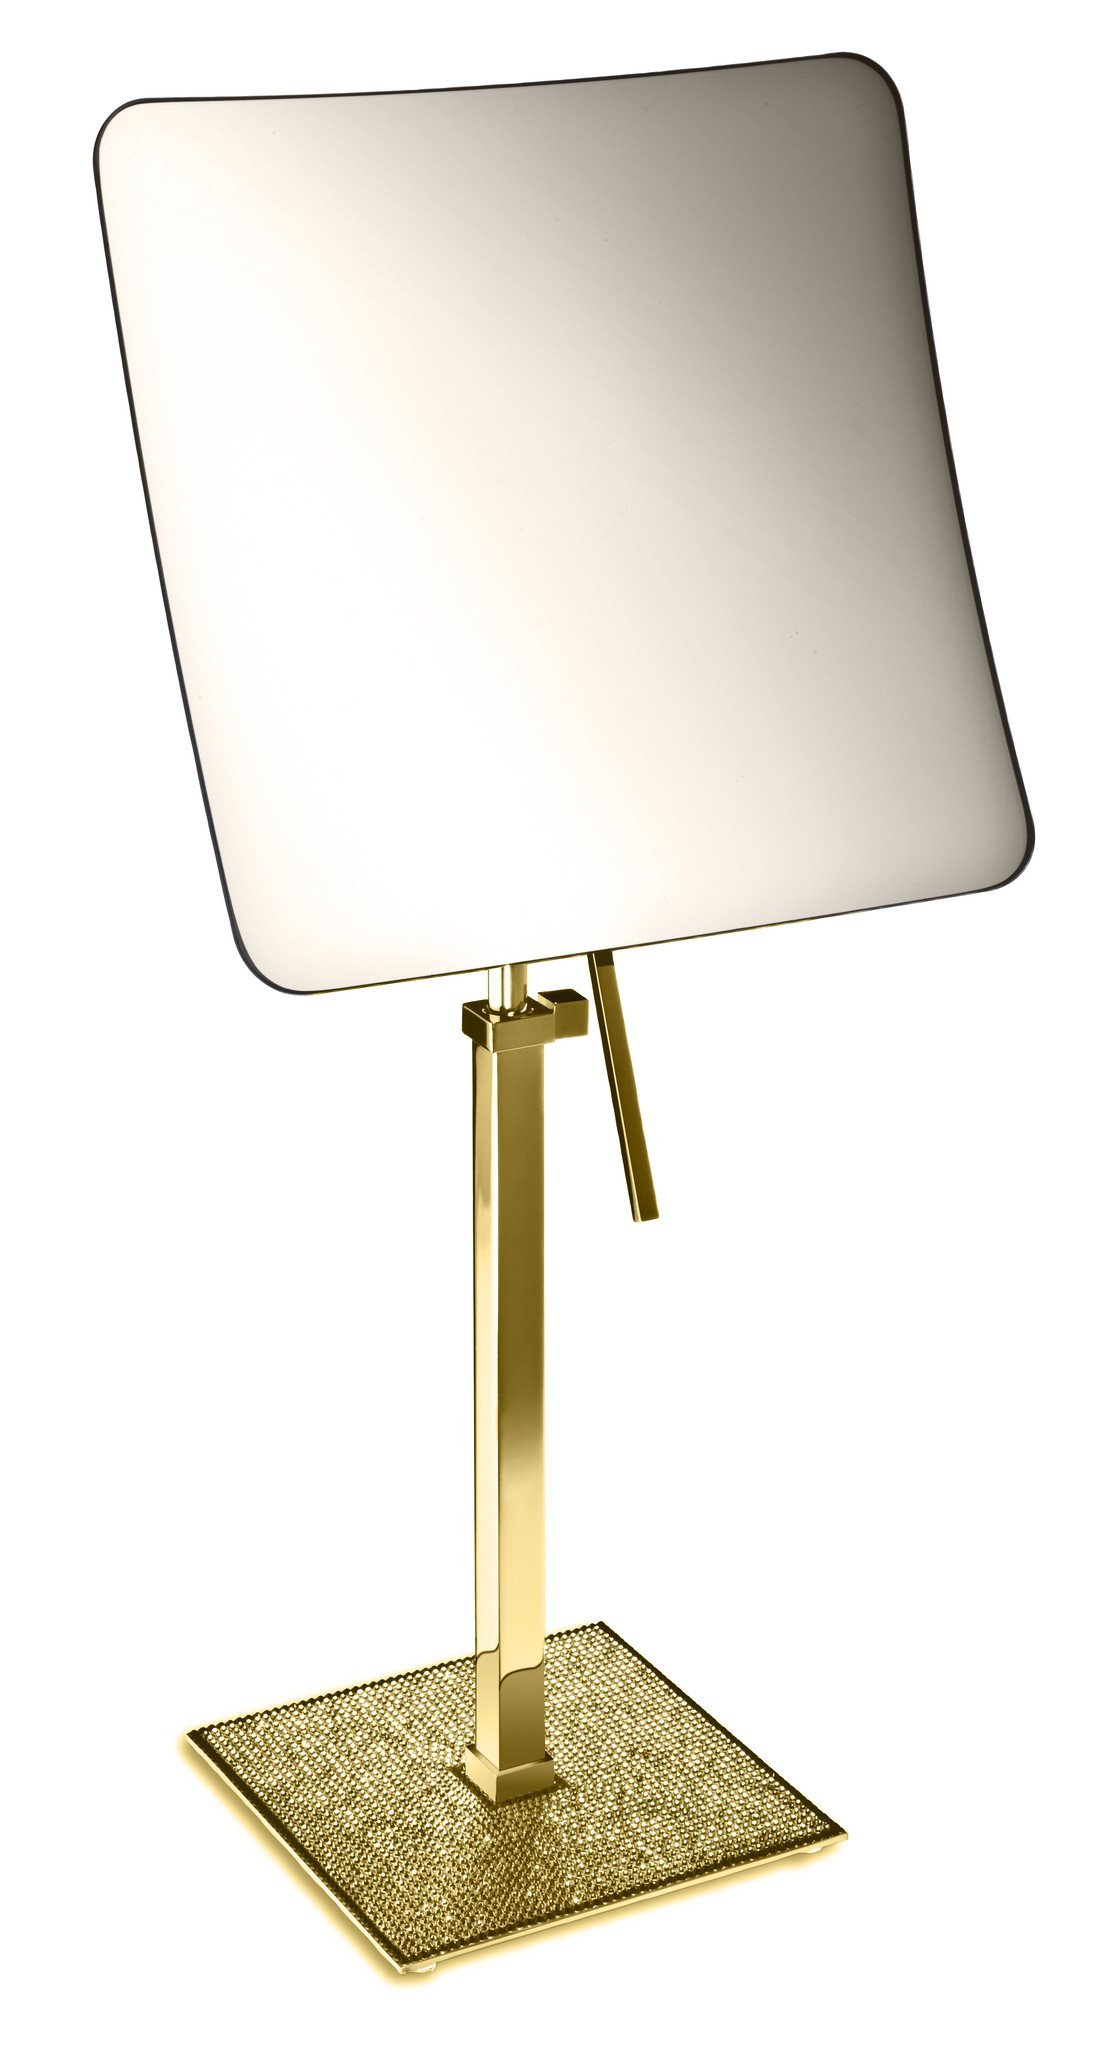 Starlight Square 5x Rectangular Magnifying Make up Cosmetic Mirror W/ Swarovski Crystal Diamonds (Polished Gold)